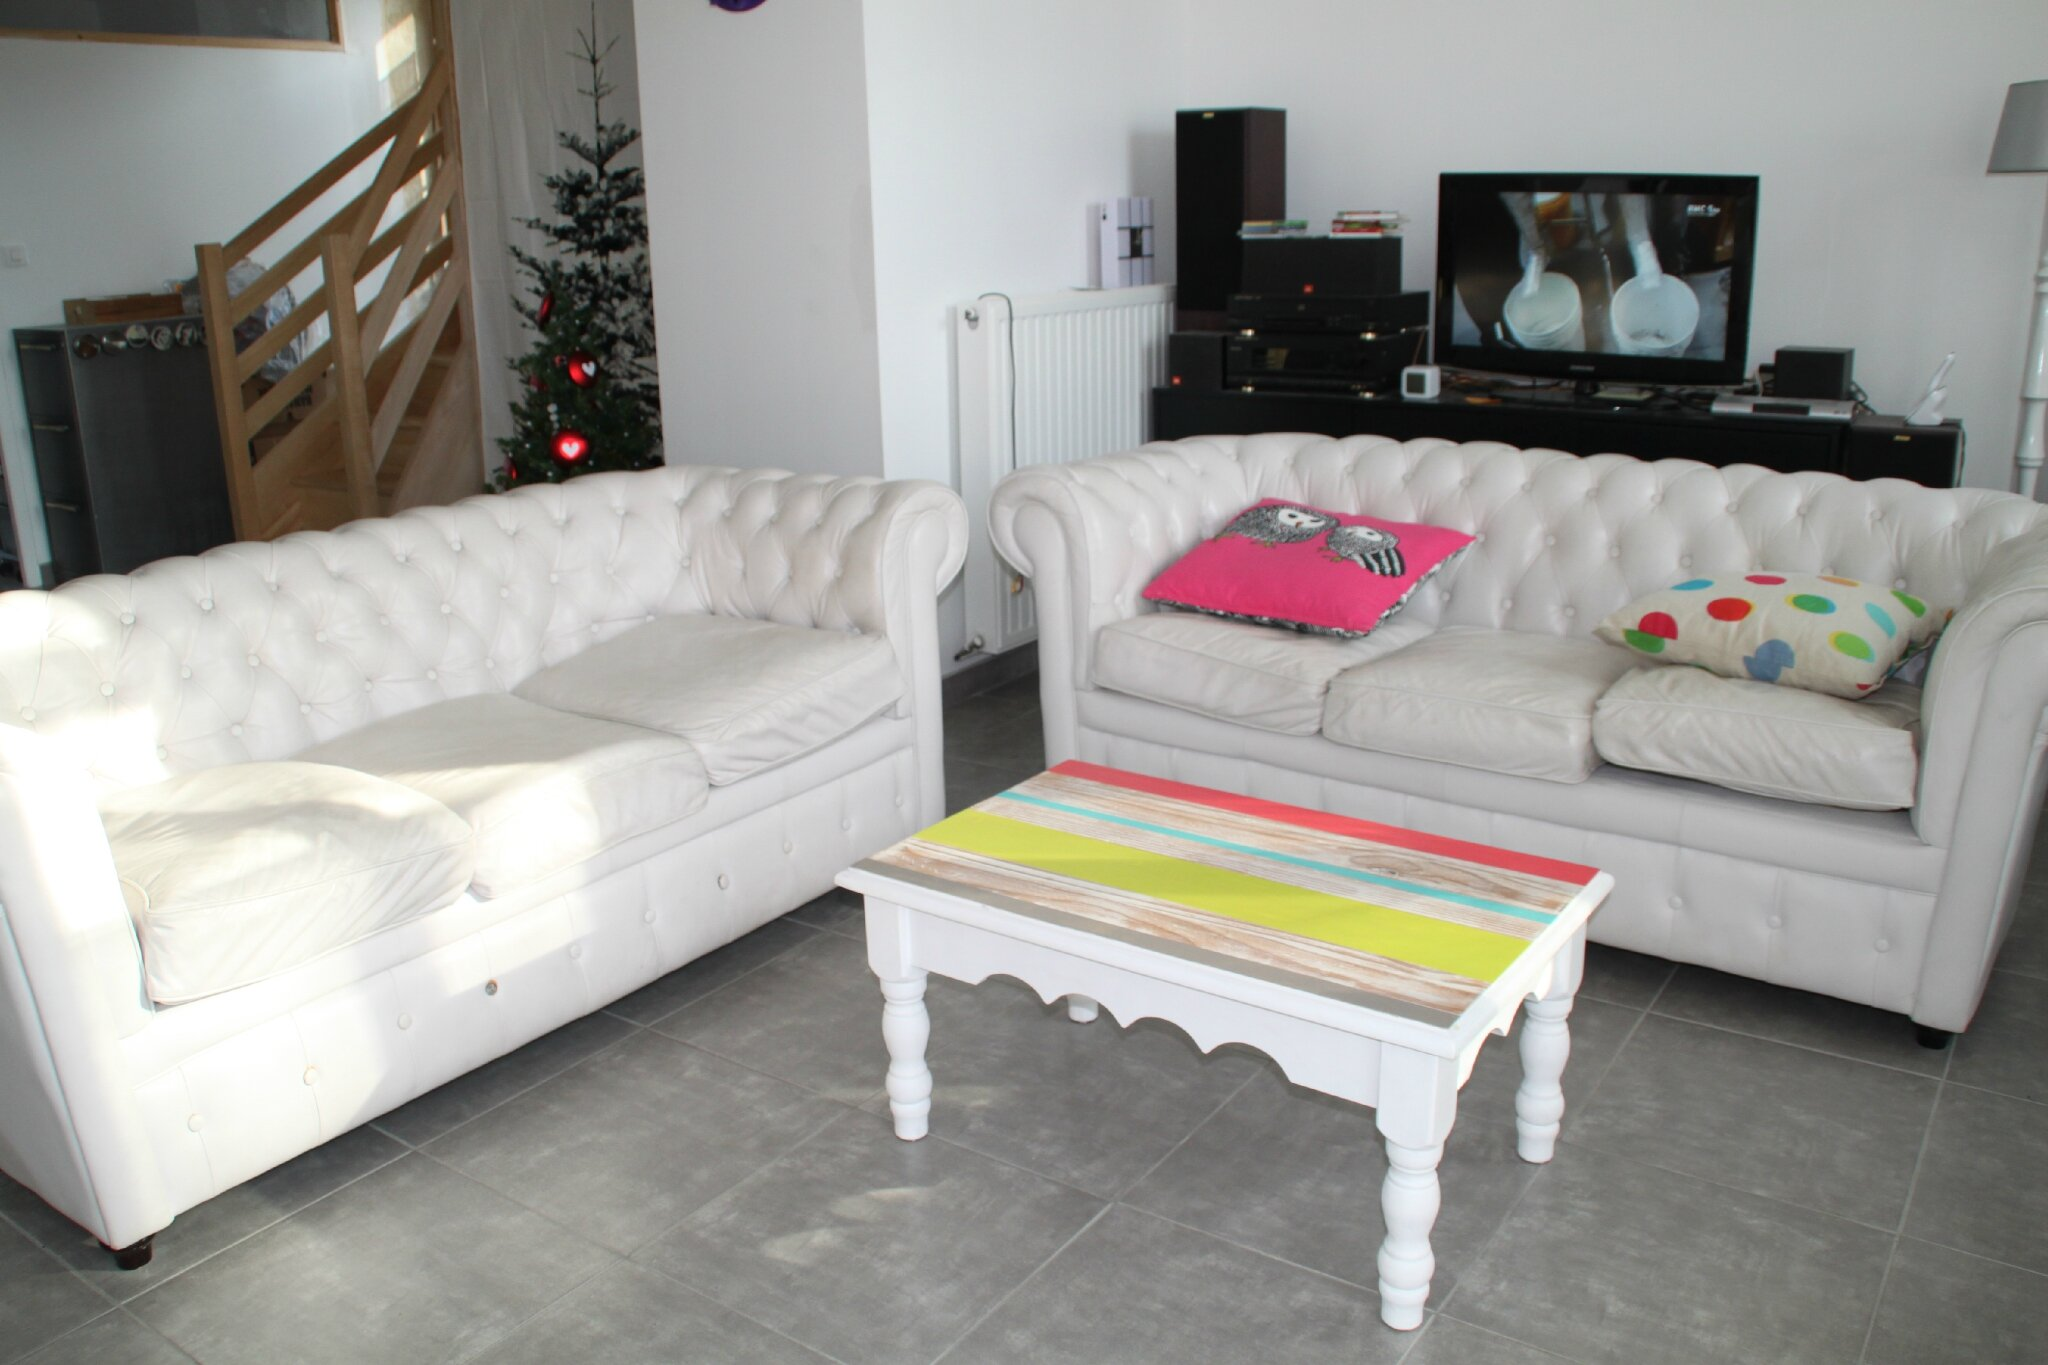 Le canap chesterfield blanc diy relooking mobilier for Les canapes de salon